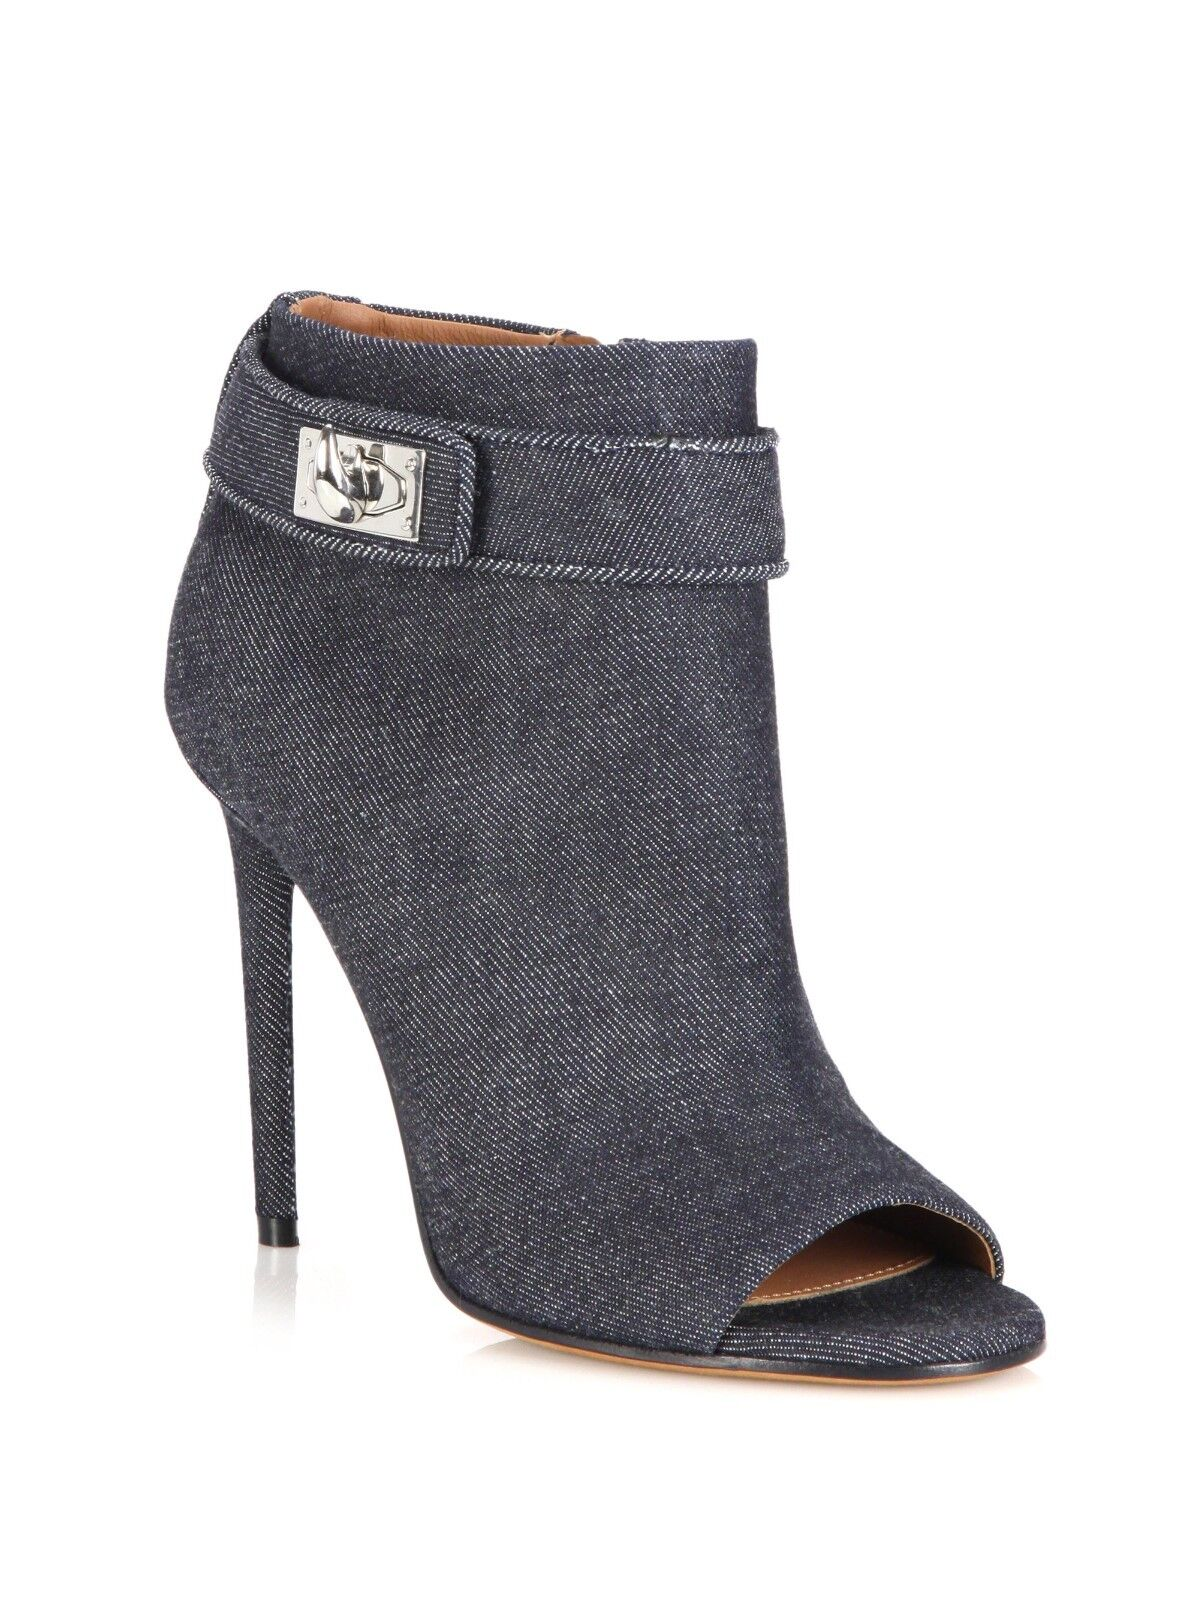 New Givenchy Shark Tooth Lock Denim Peep Toe Ankle Stiefelie Stiefel Sz 39.5 9.5 RARE